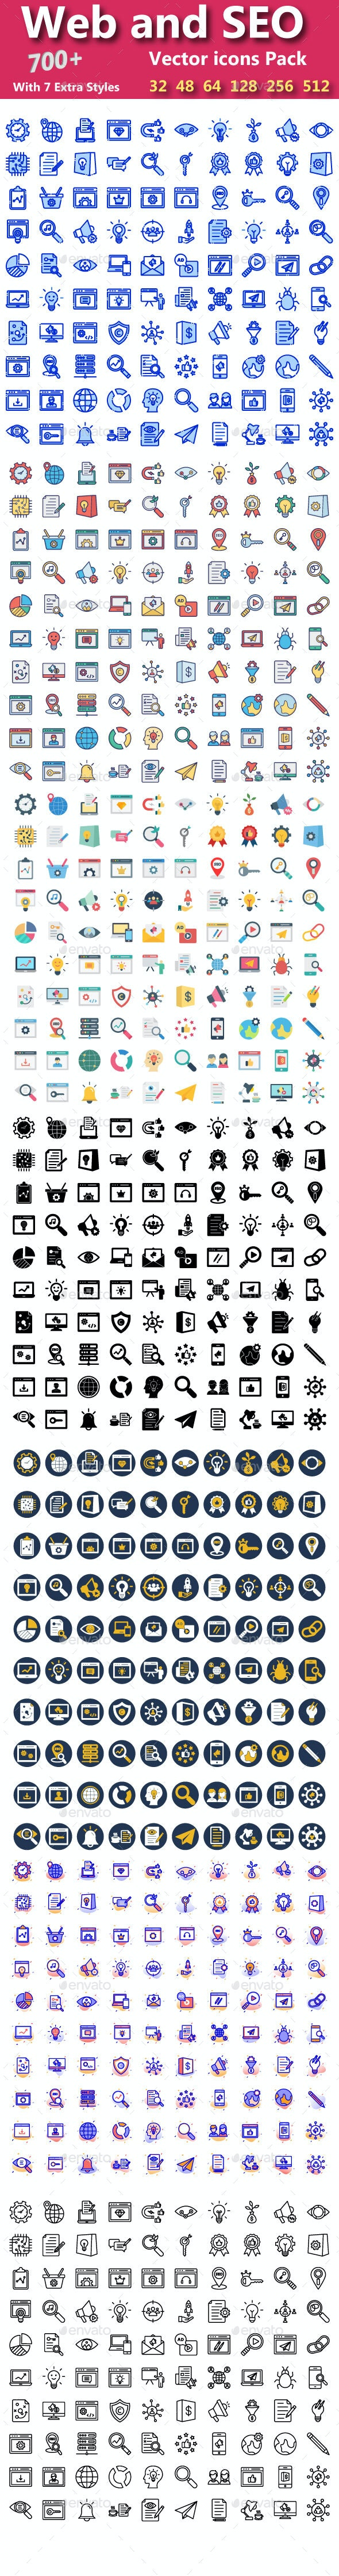 Web & Seo Vector Icons pack - Icons